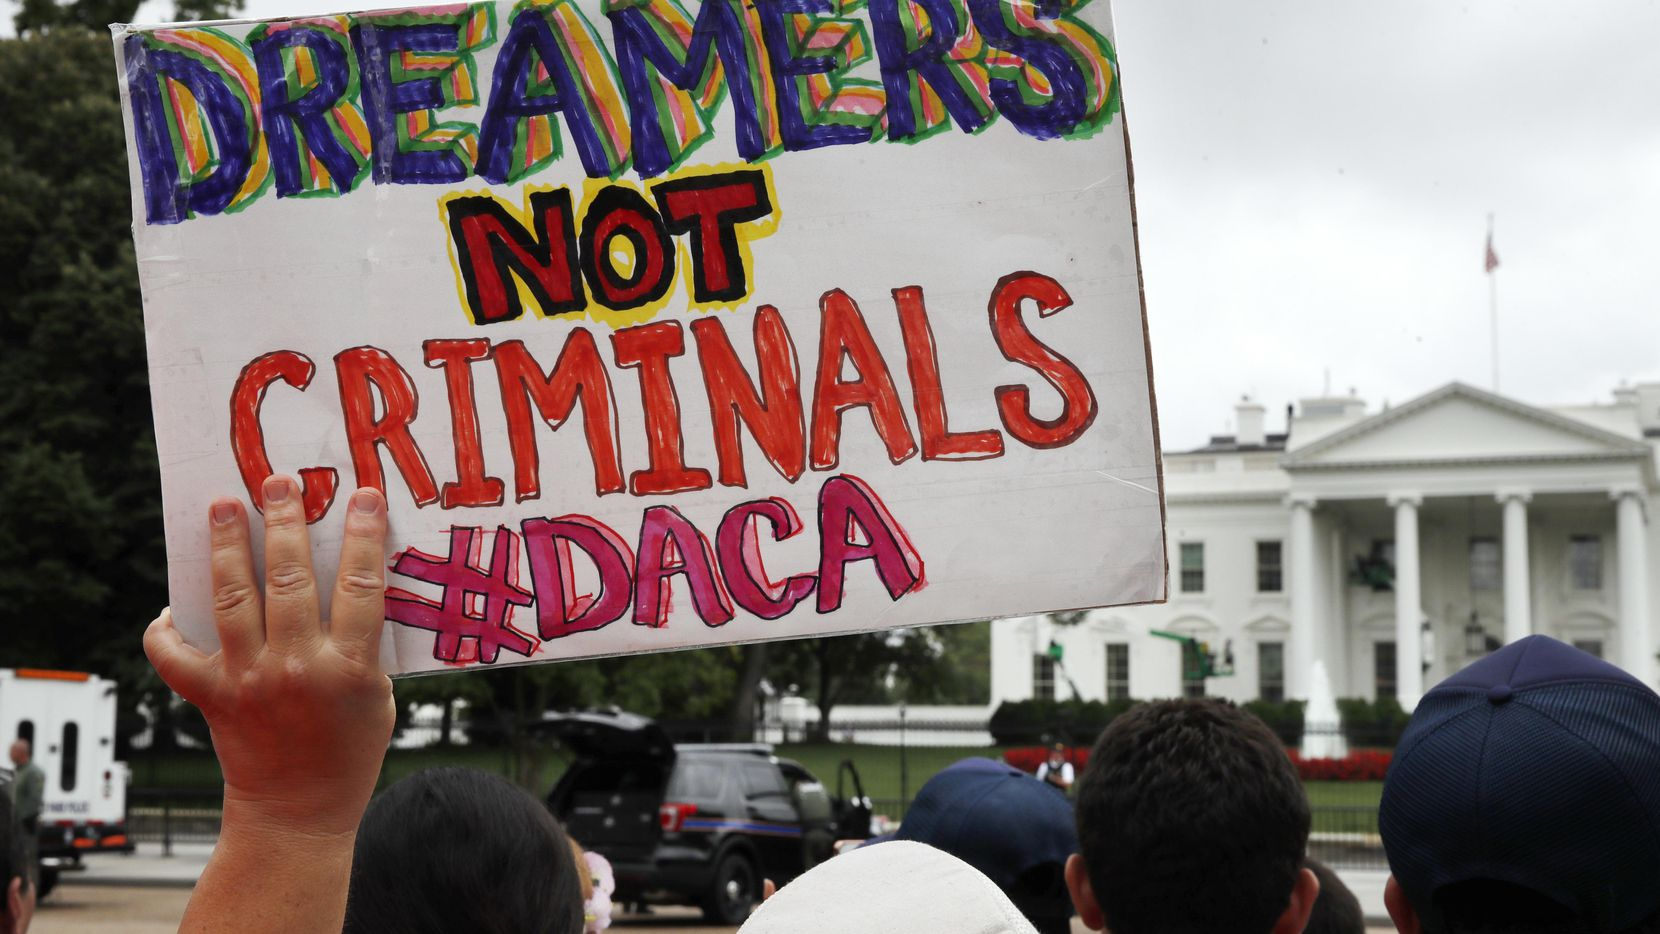 The Supreme Court will hear arguments about the Deferred Action for Childhood Arrivals program on November 12. Some 680,000 immigrants benefit from the program.